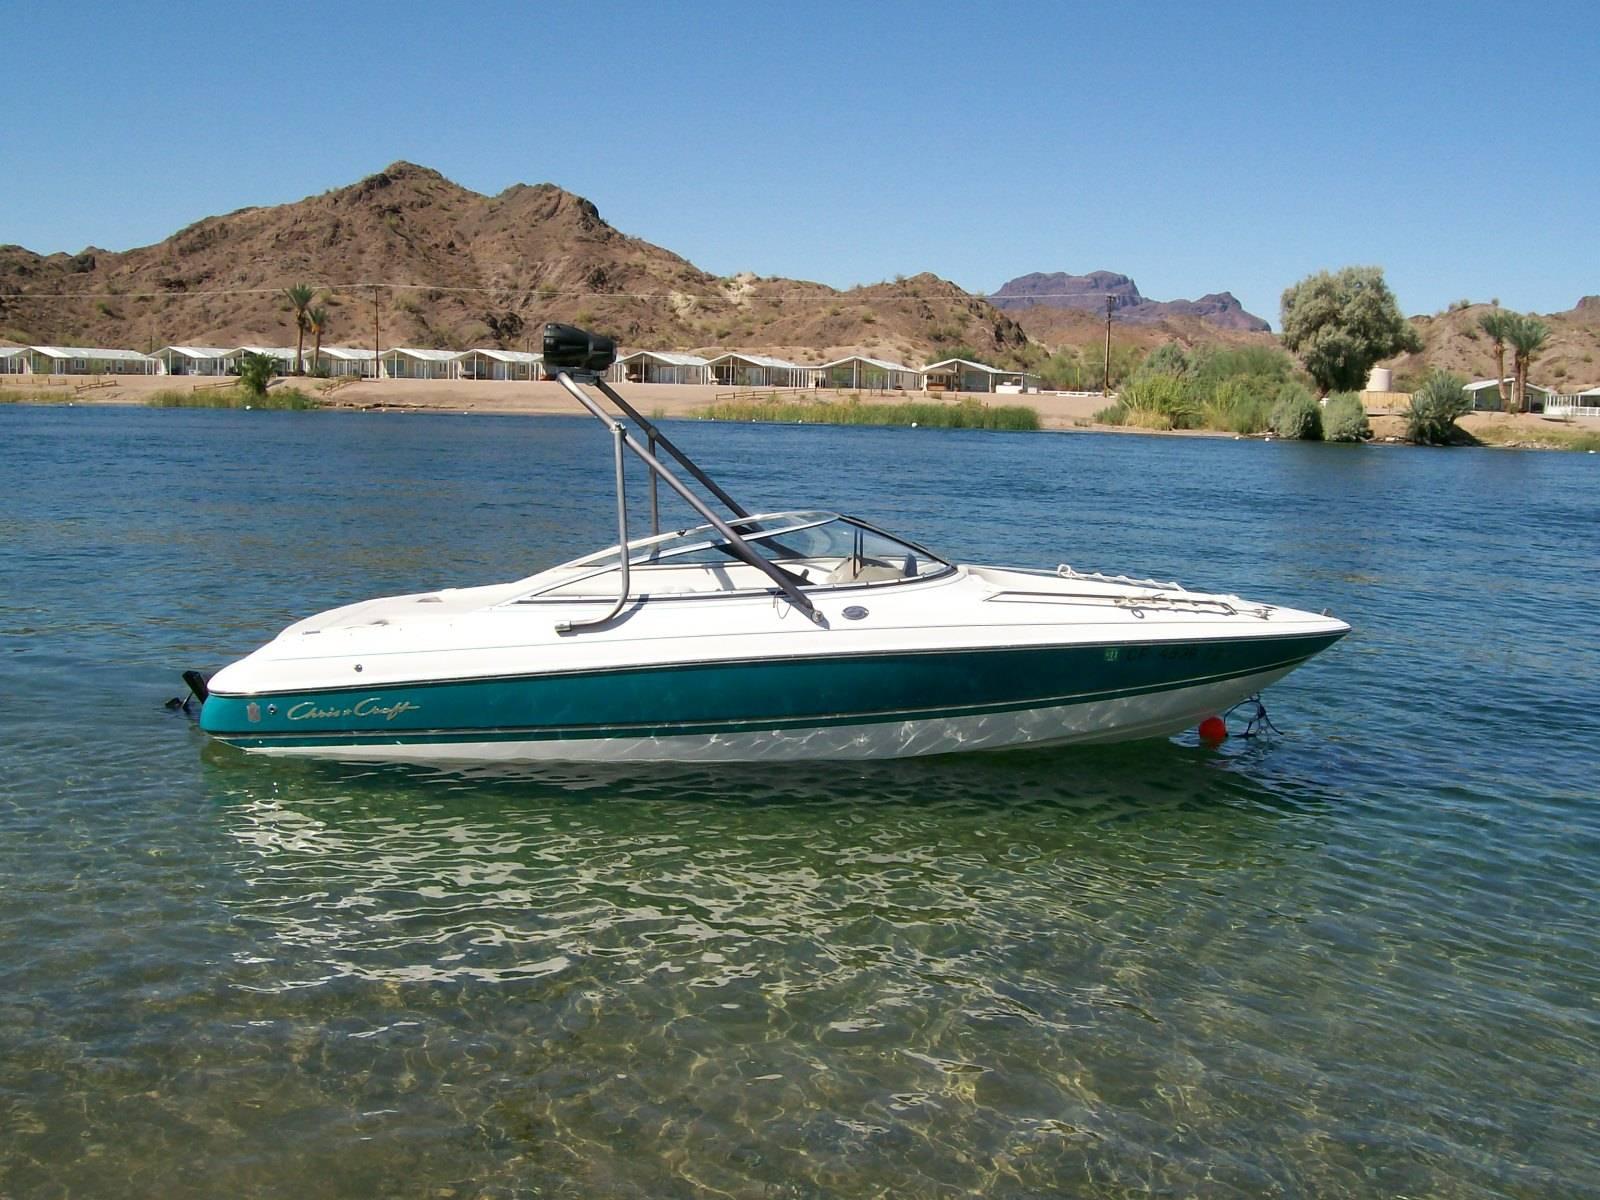 Omc 58 Cobra Info Page 1 Iboats Boating Forums 456875 Chris Craft Deck Boat Wiring Diagram